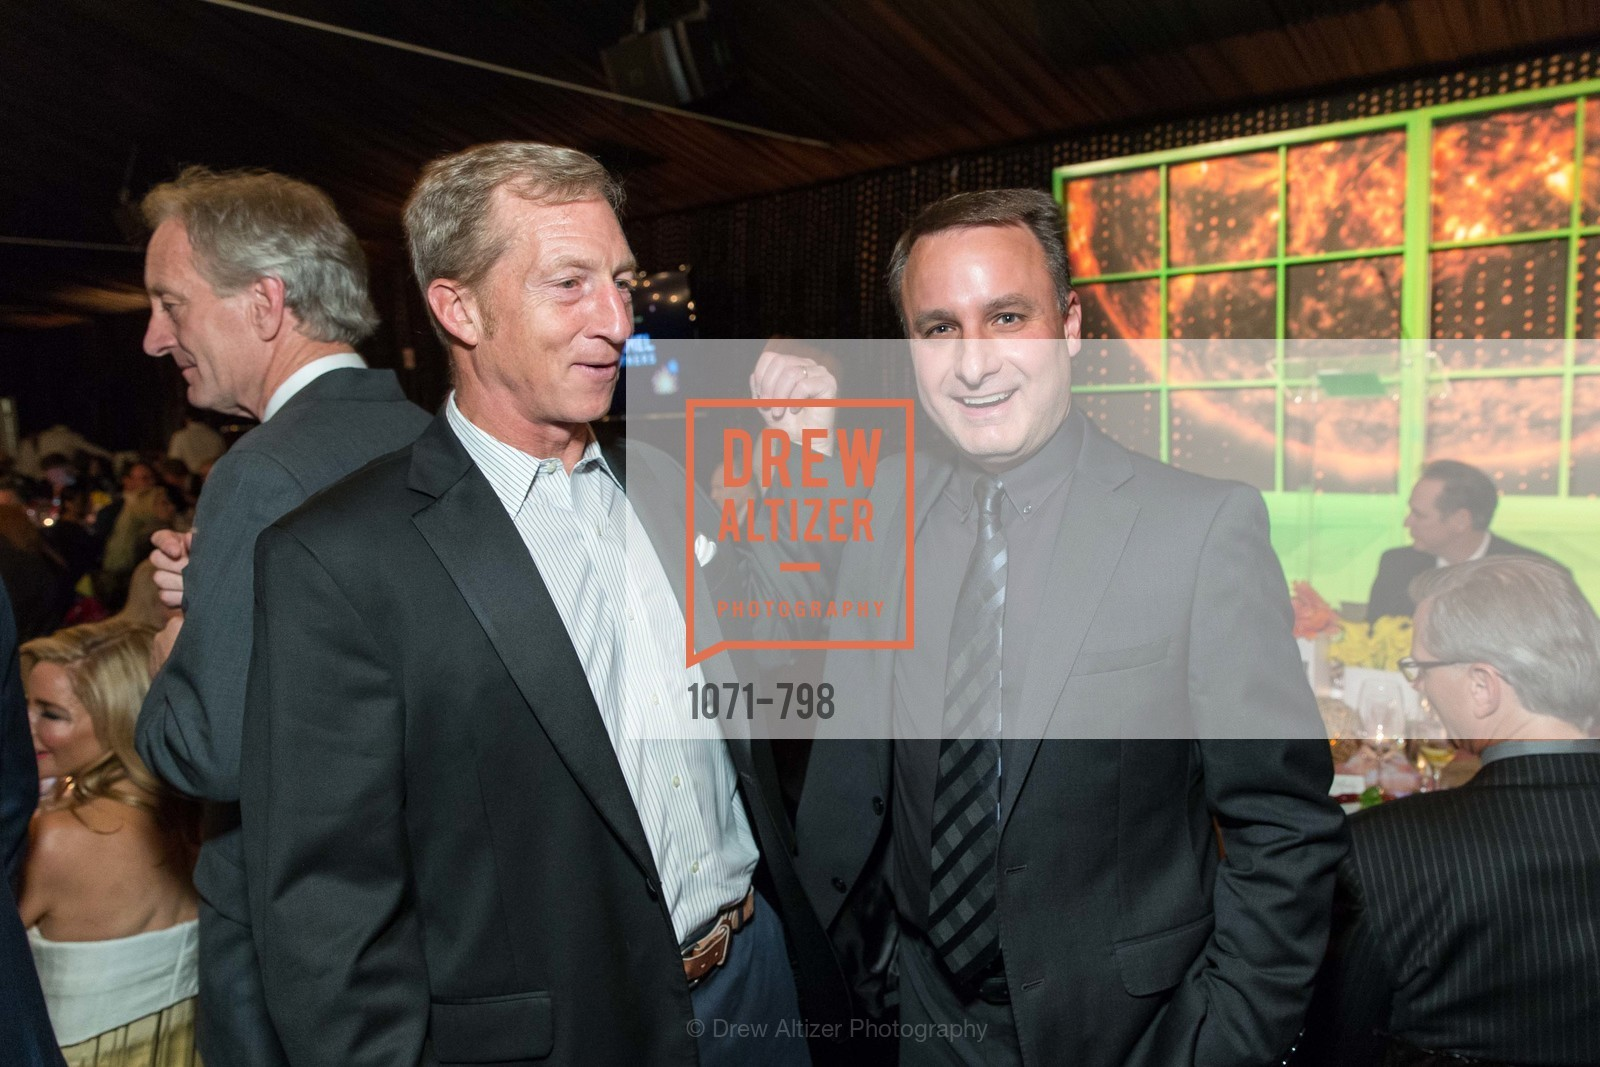 Tom Steyer, Jon Foley, CALIFORNIA ACADEMY OF SCIENCES - Big Bang Gala 2015, US, April 23rd, 2015,Drew Altizer, Drew Altizer Photography, full-service agency, private events, San Francisco photographer, photographer california